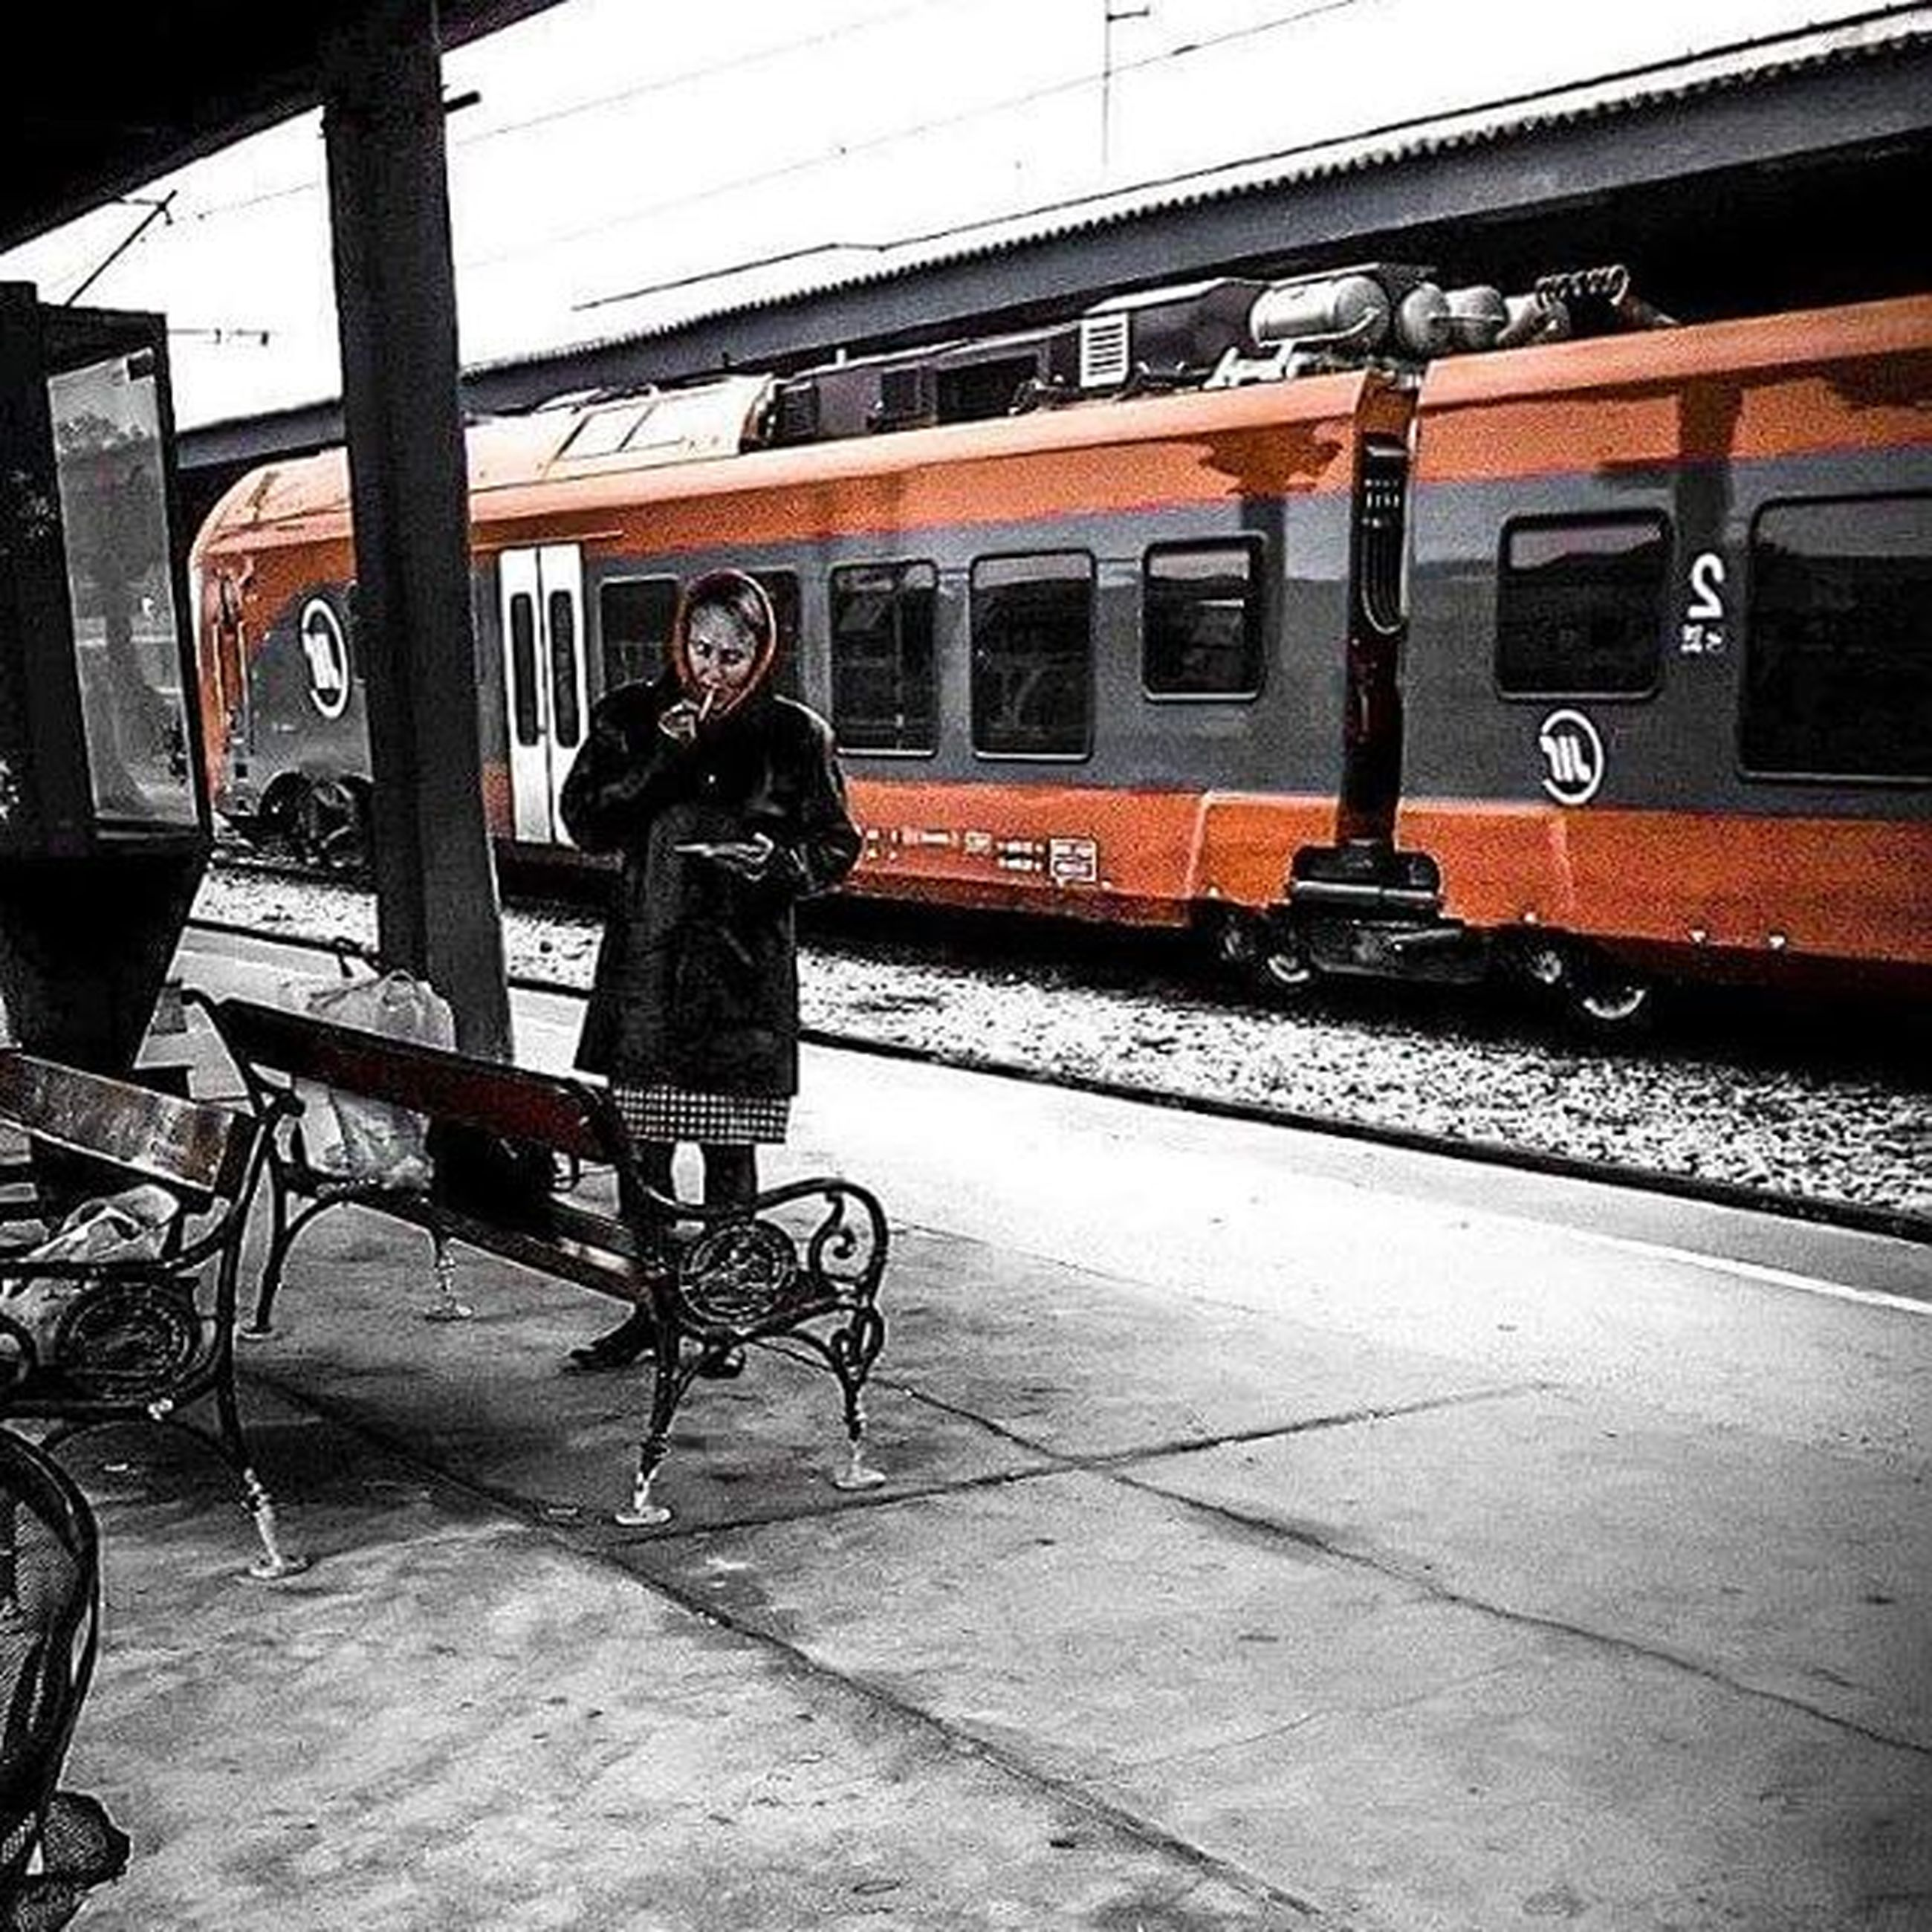 transportation, mode of transport, land vehicle, travel, full length, car, men, bicycle, lifestyles, public transportation, riding, street, stationary, on the move, train - vehicle, leisure activity, rear view, side view